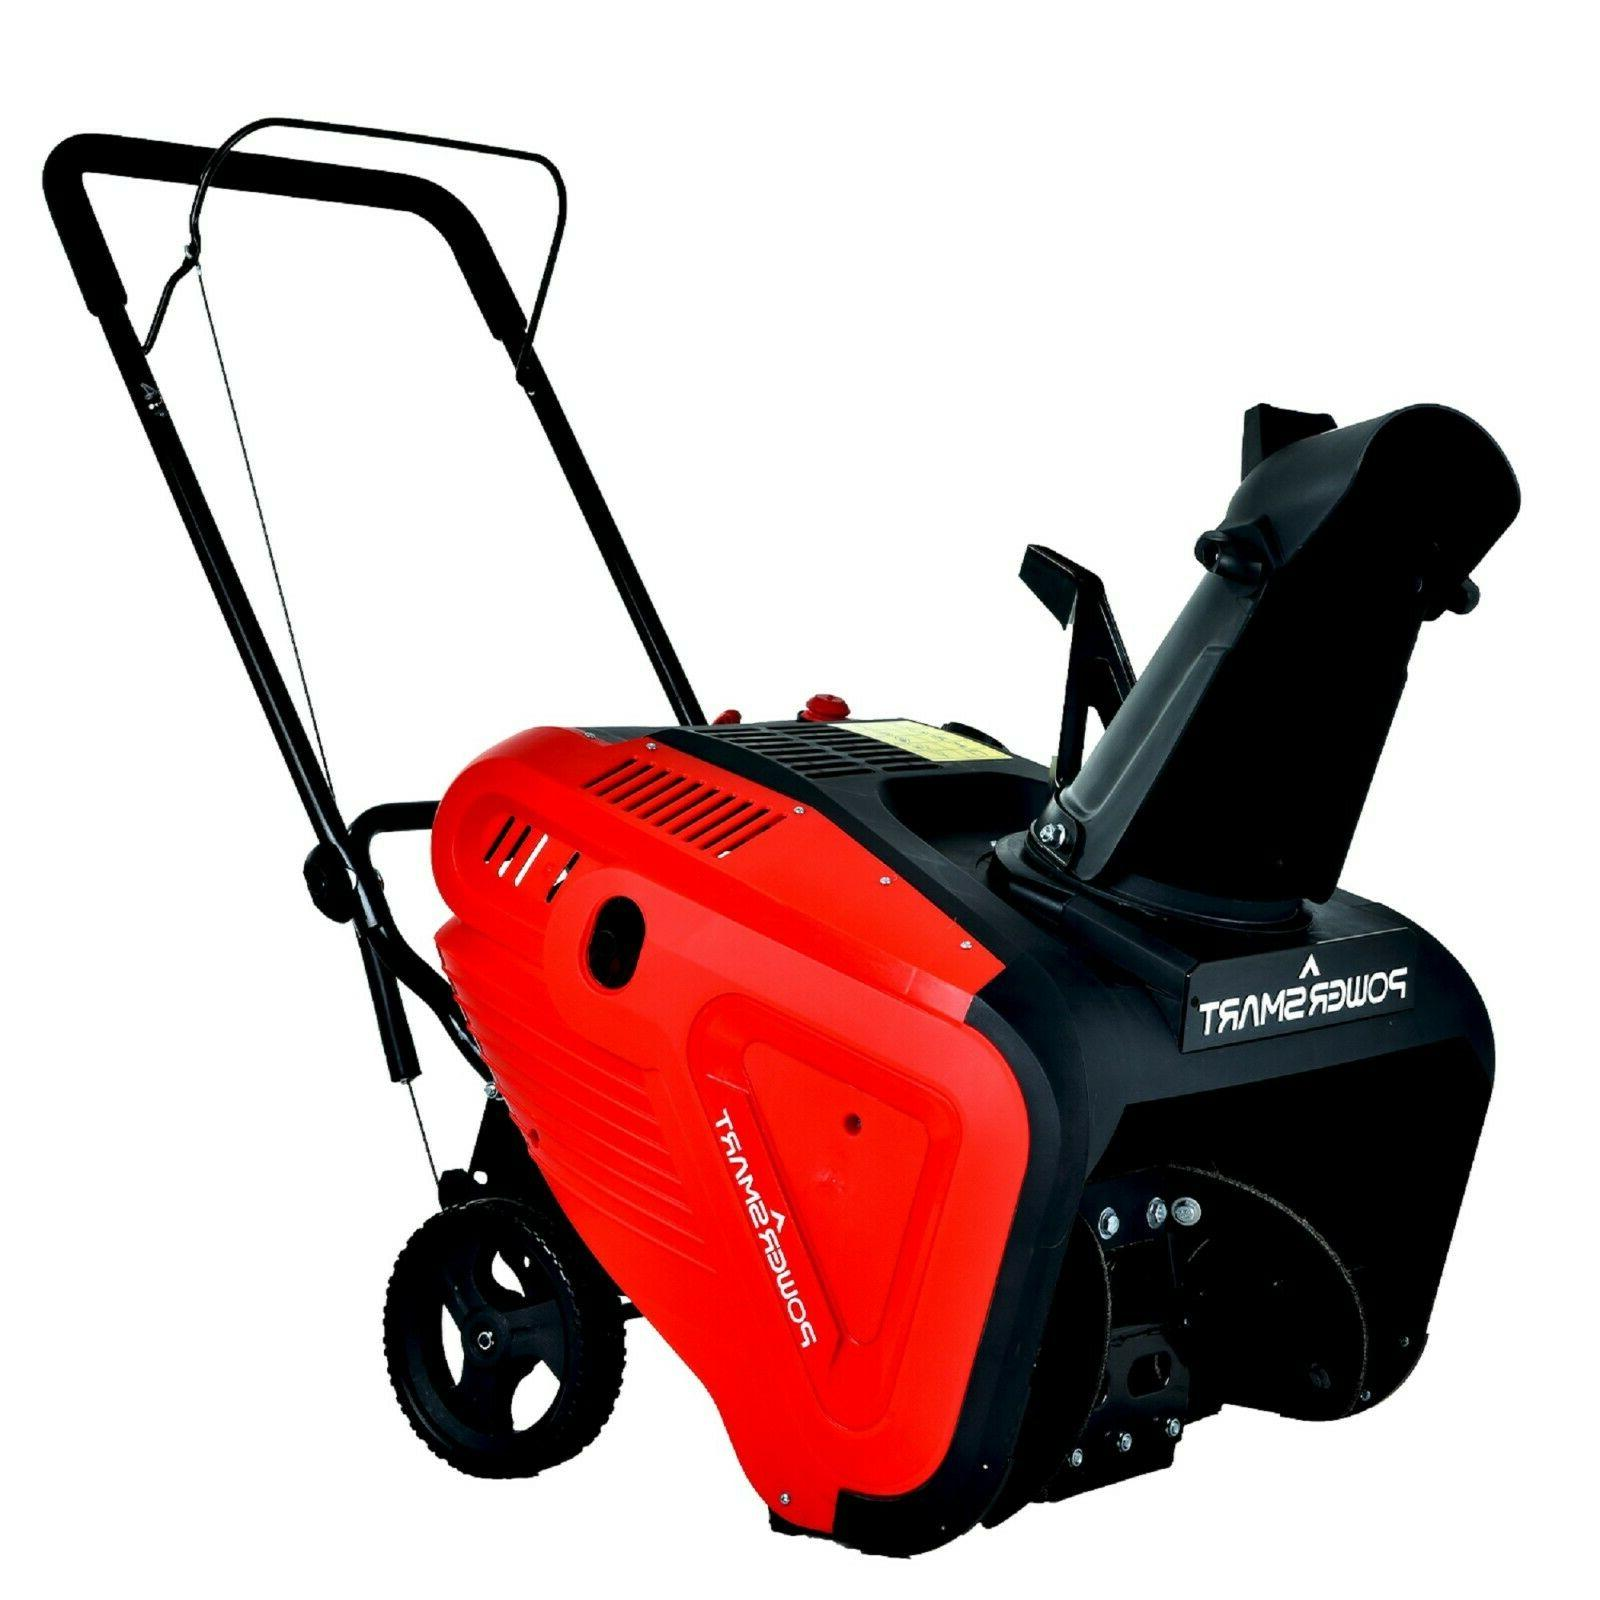 pss1210m 21 inch single stage gas snow